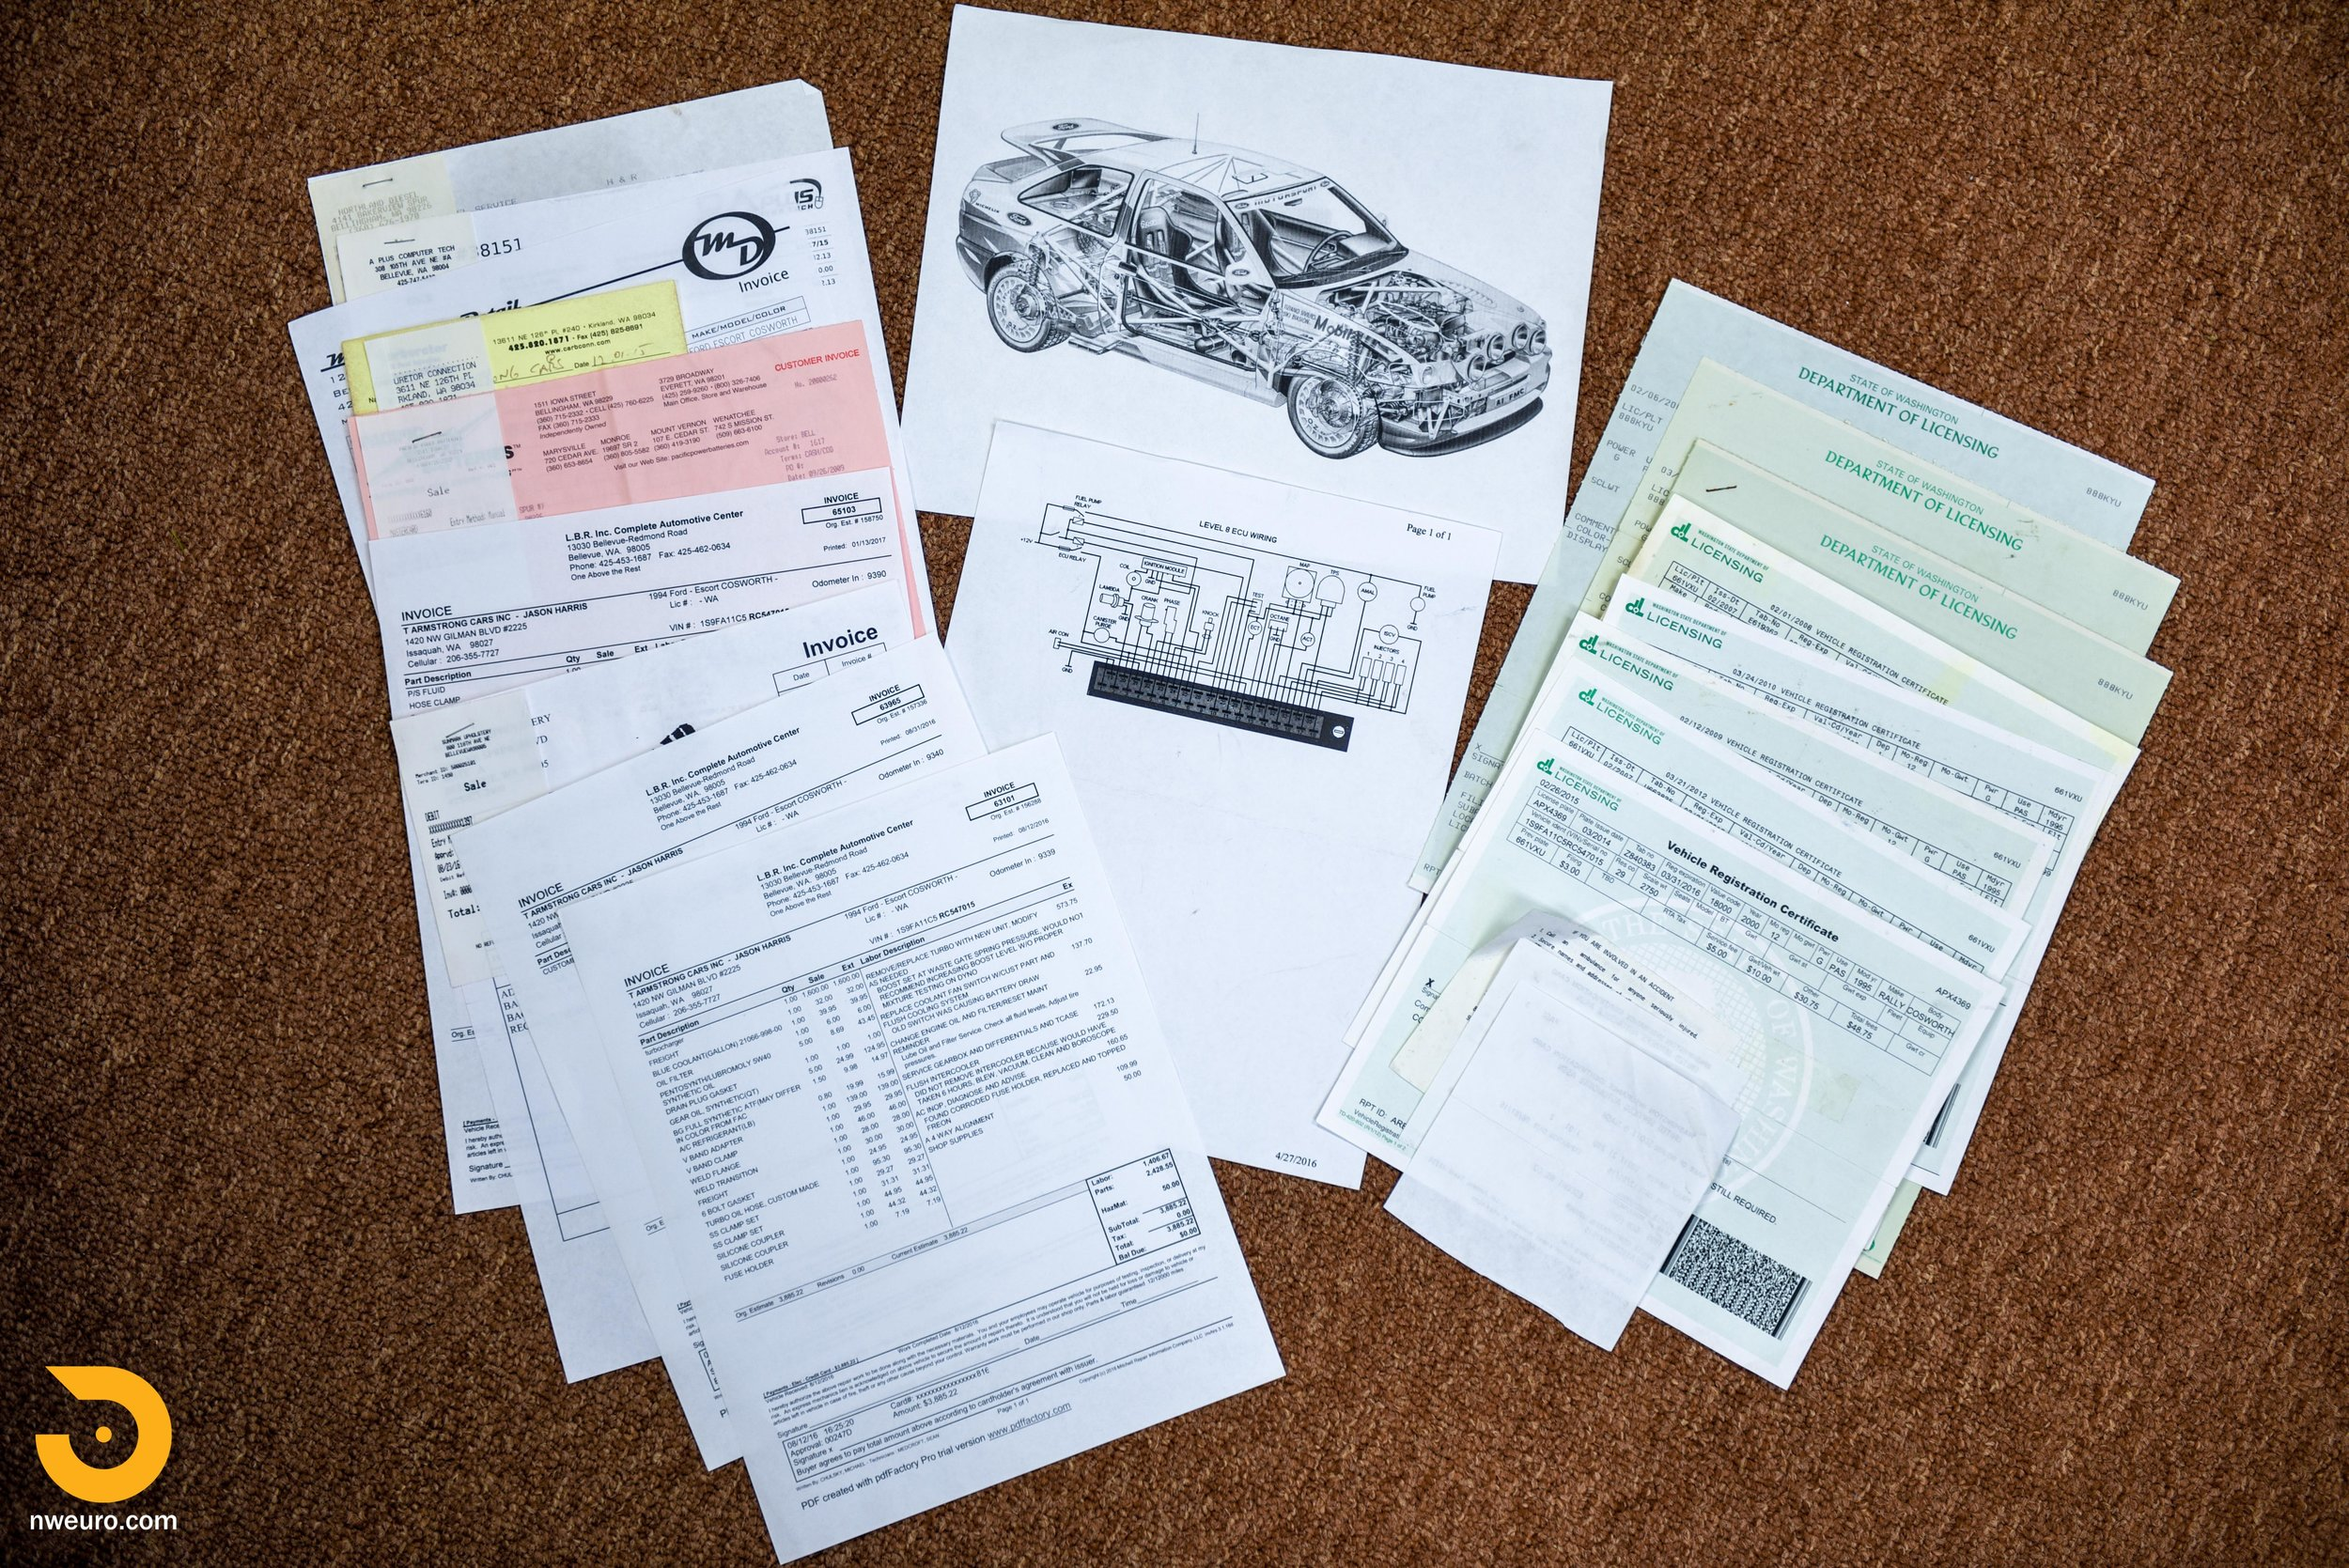 1995 Ford Escort Cosworth RS Gold Documents-1.jpg